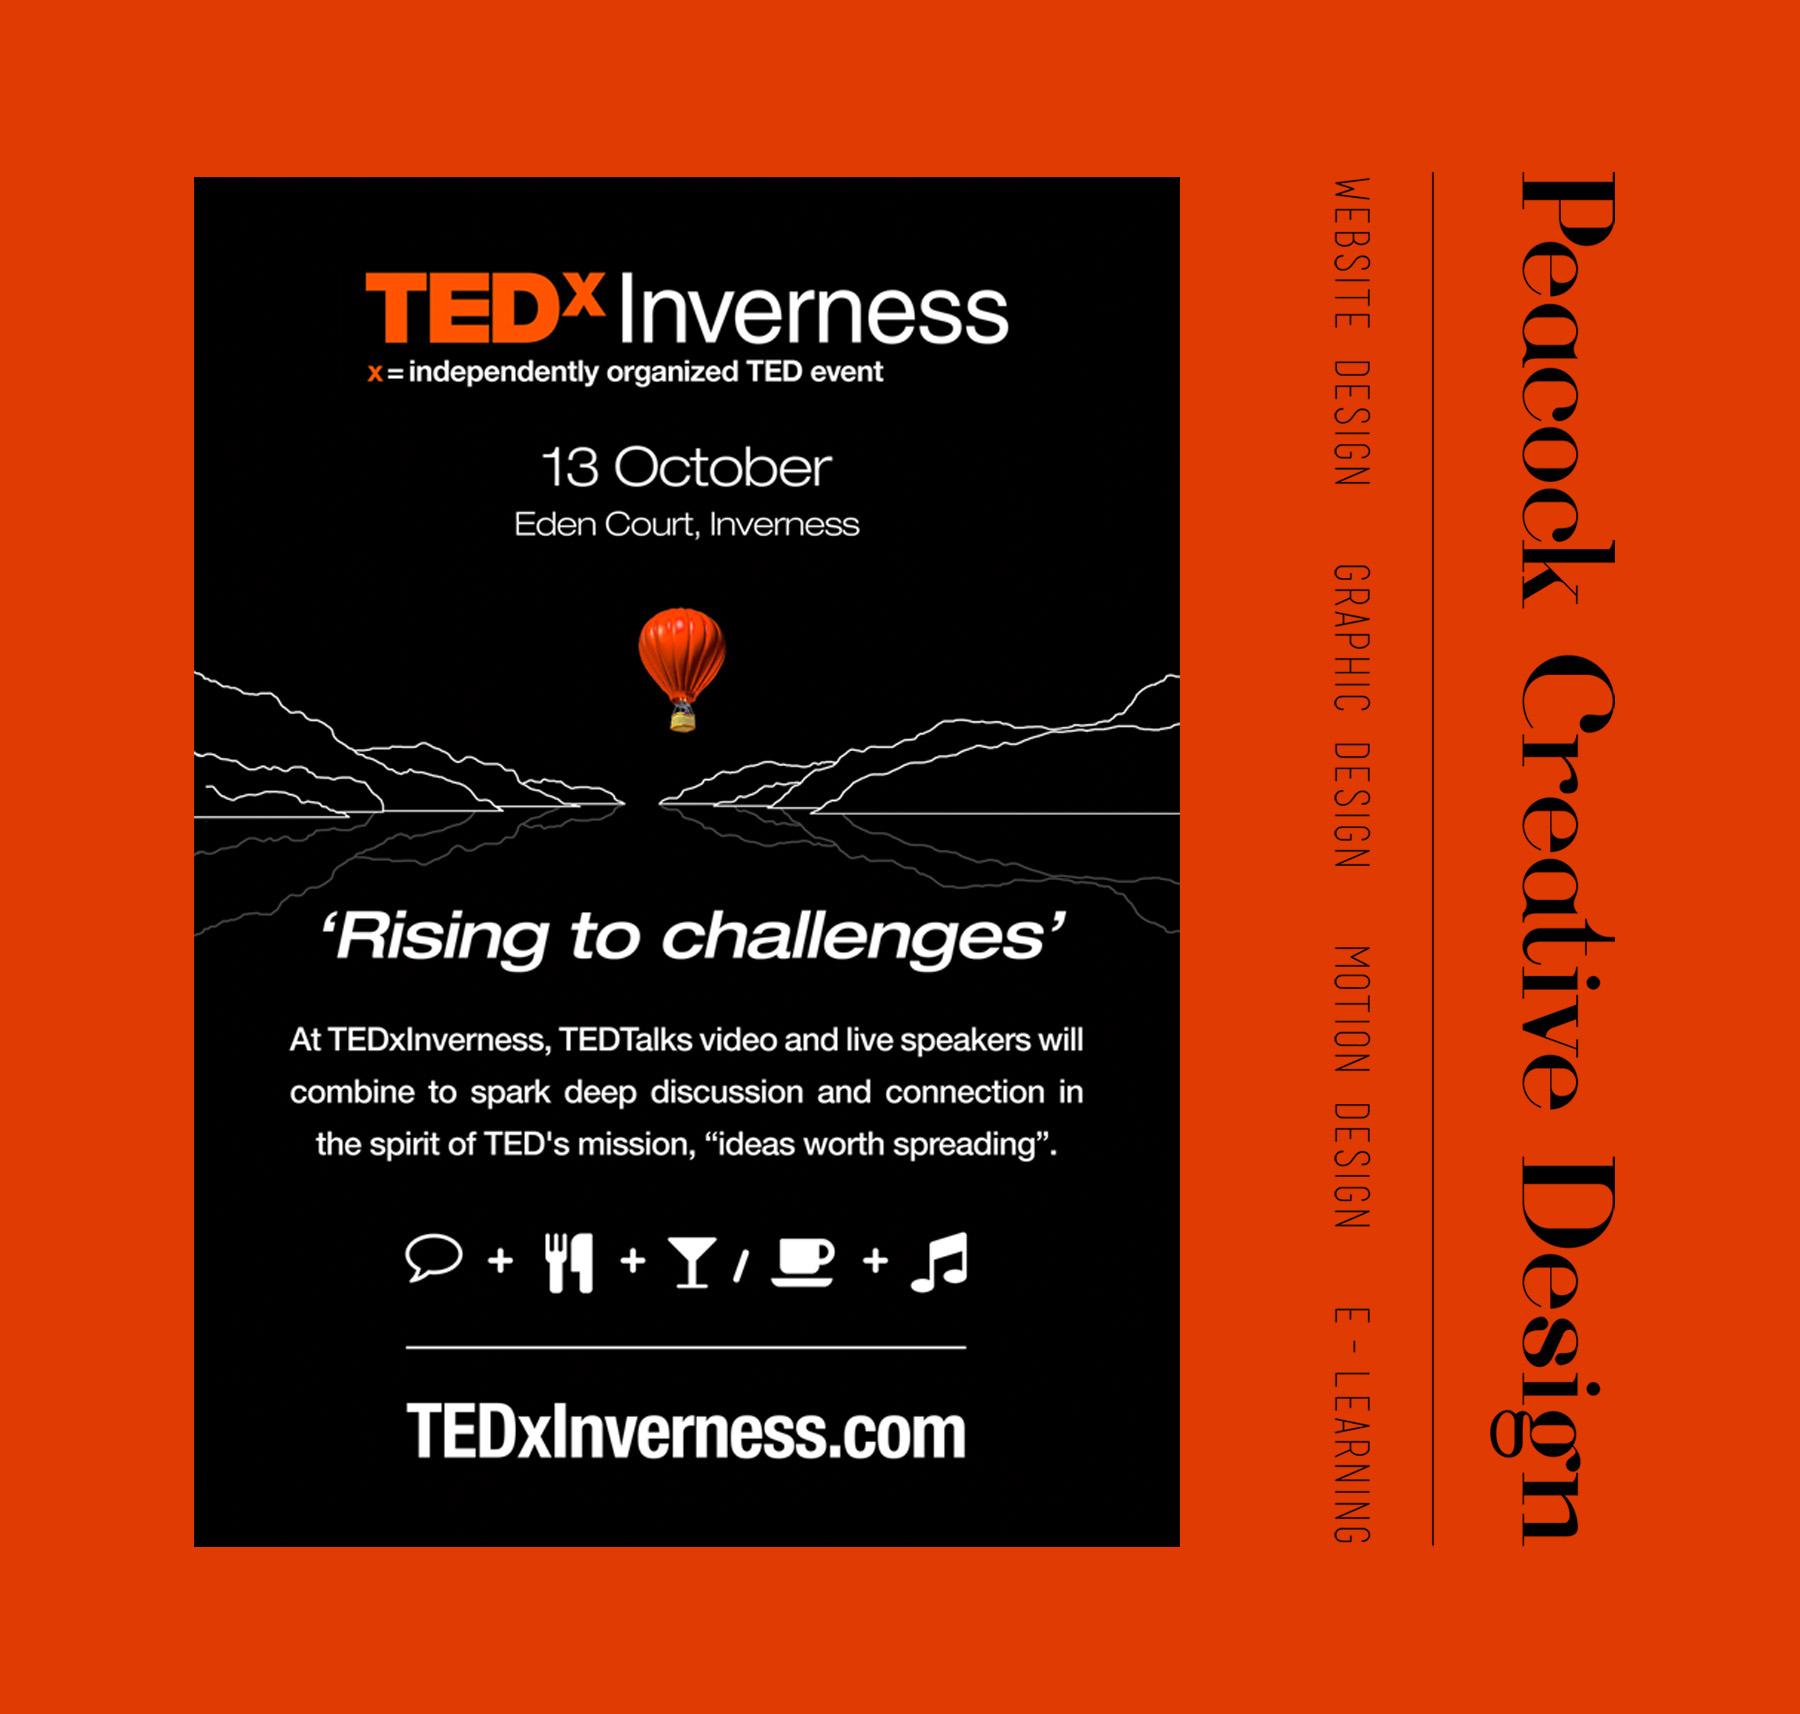 TEDx Inverness poster